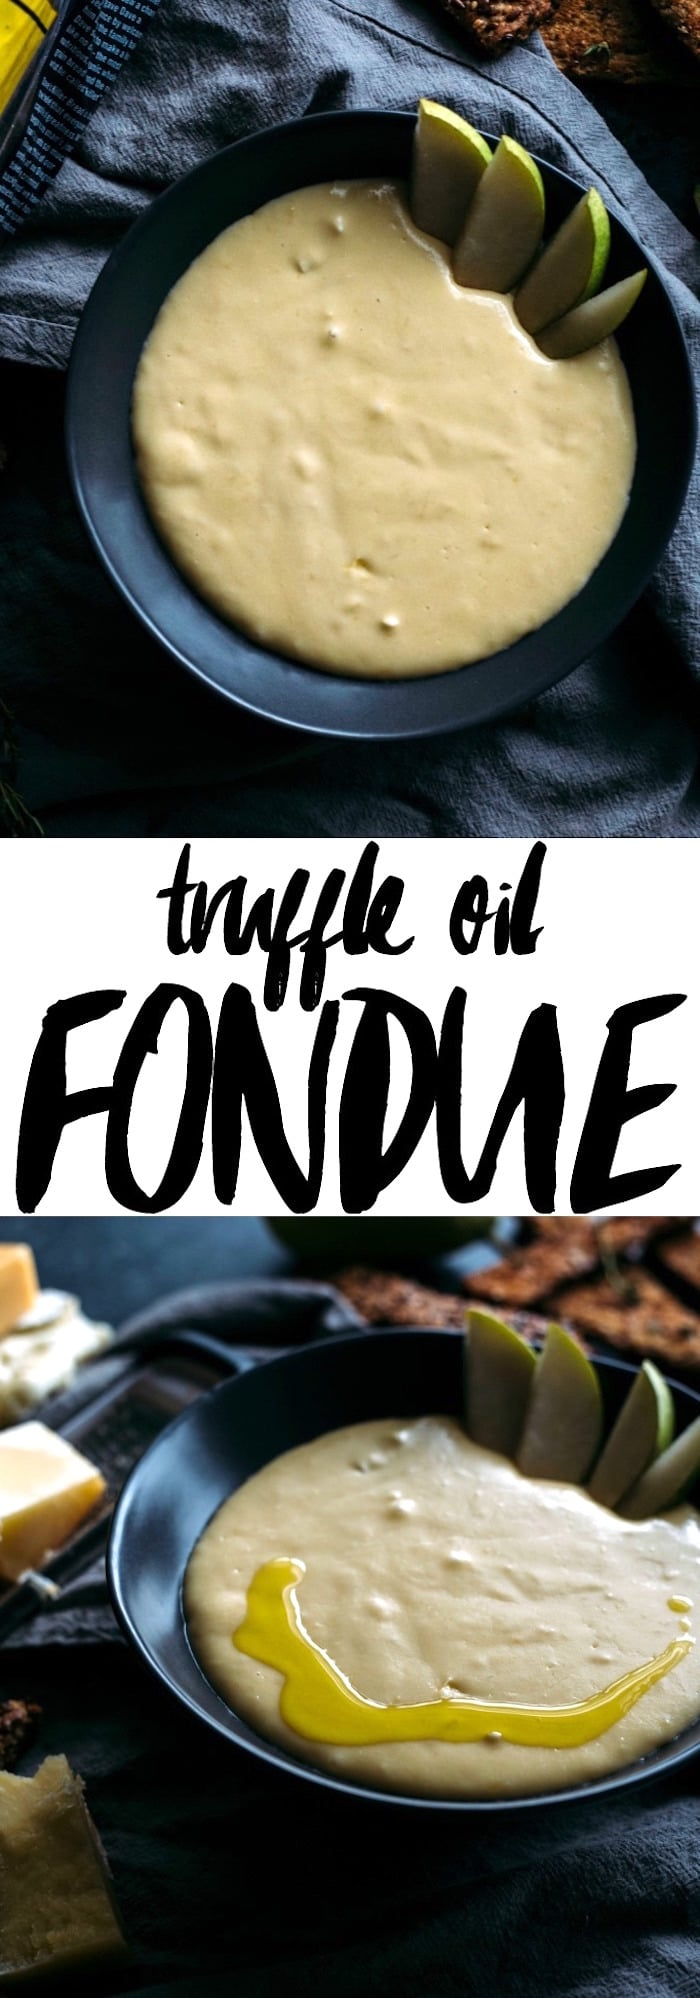 Truffle Oil Fondue | Simple fondue complete with truffle oil and buttered toasts | thealmondeater.com